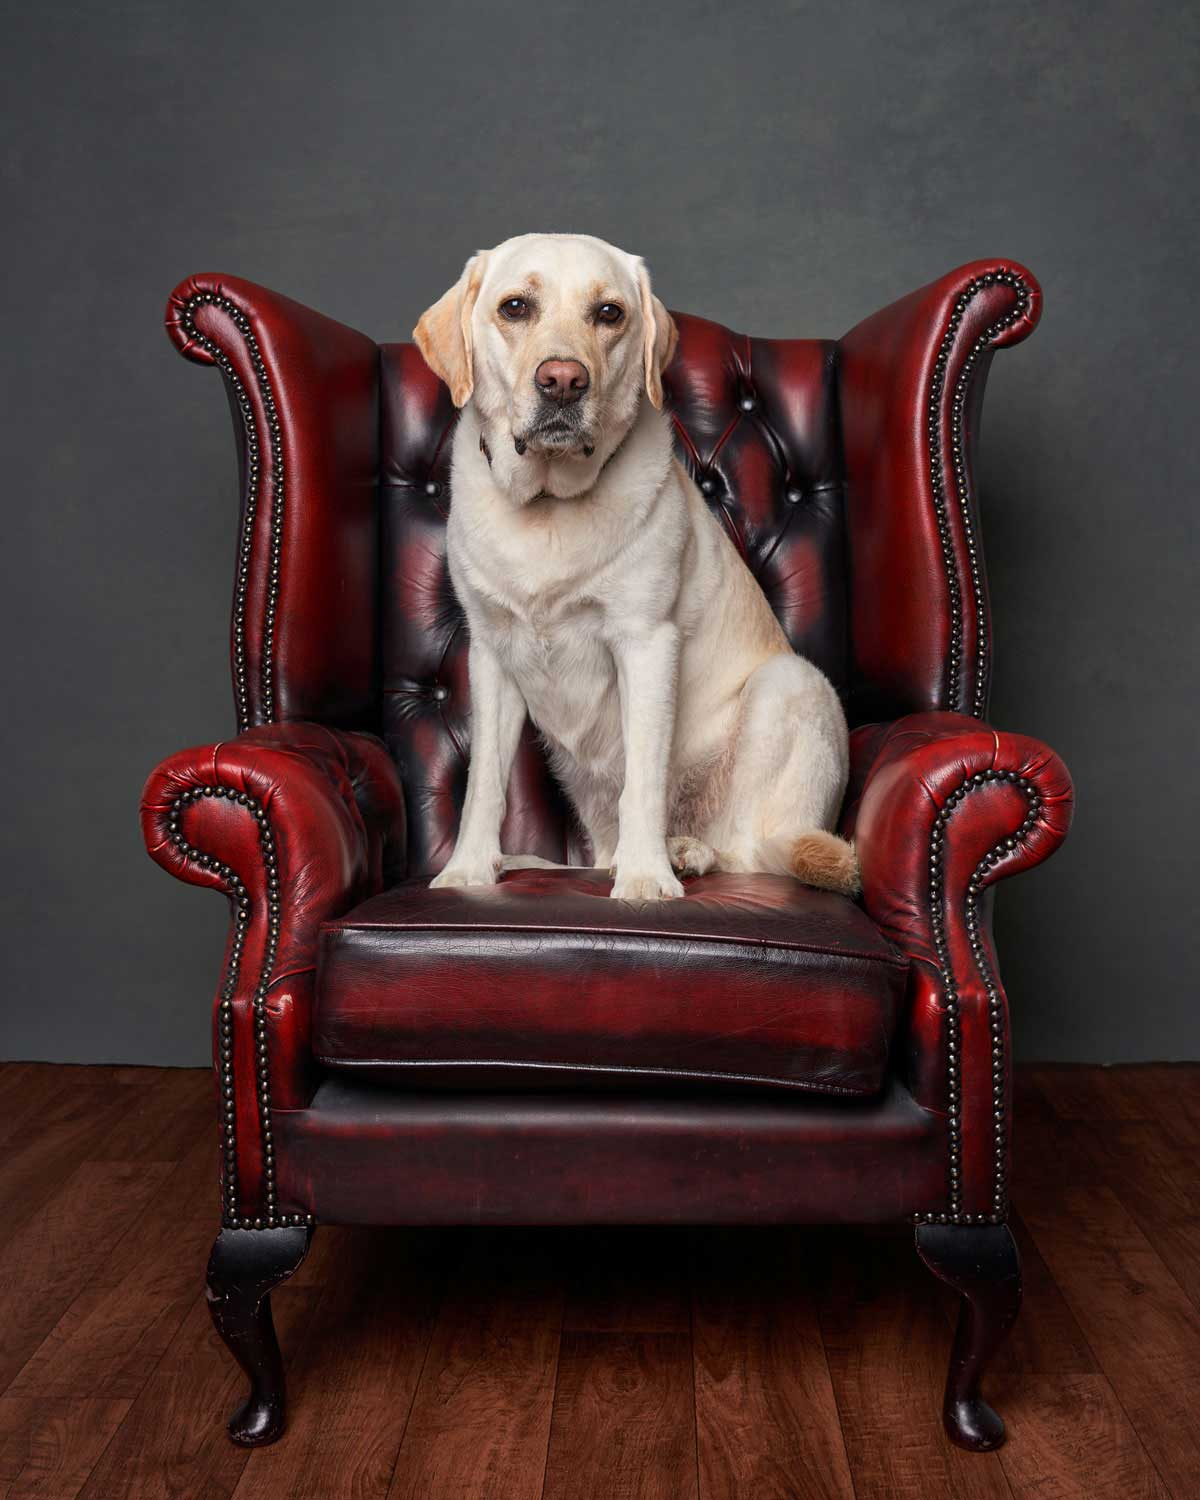 Dog Portrait Studio Photography 0003